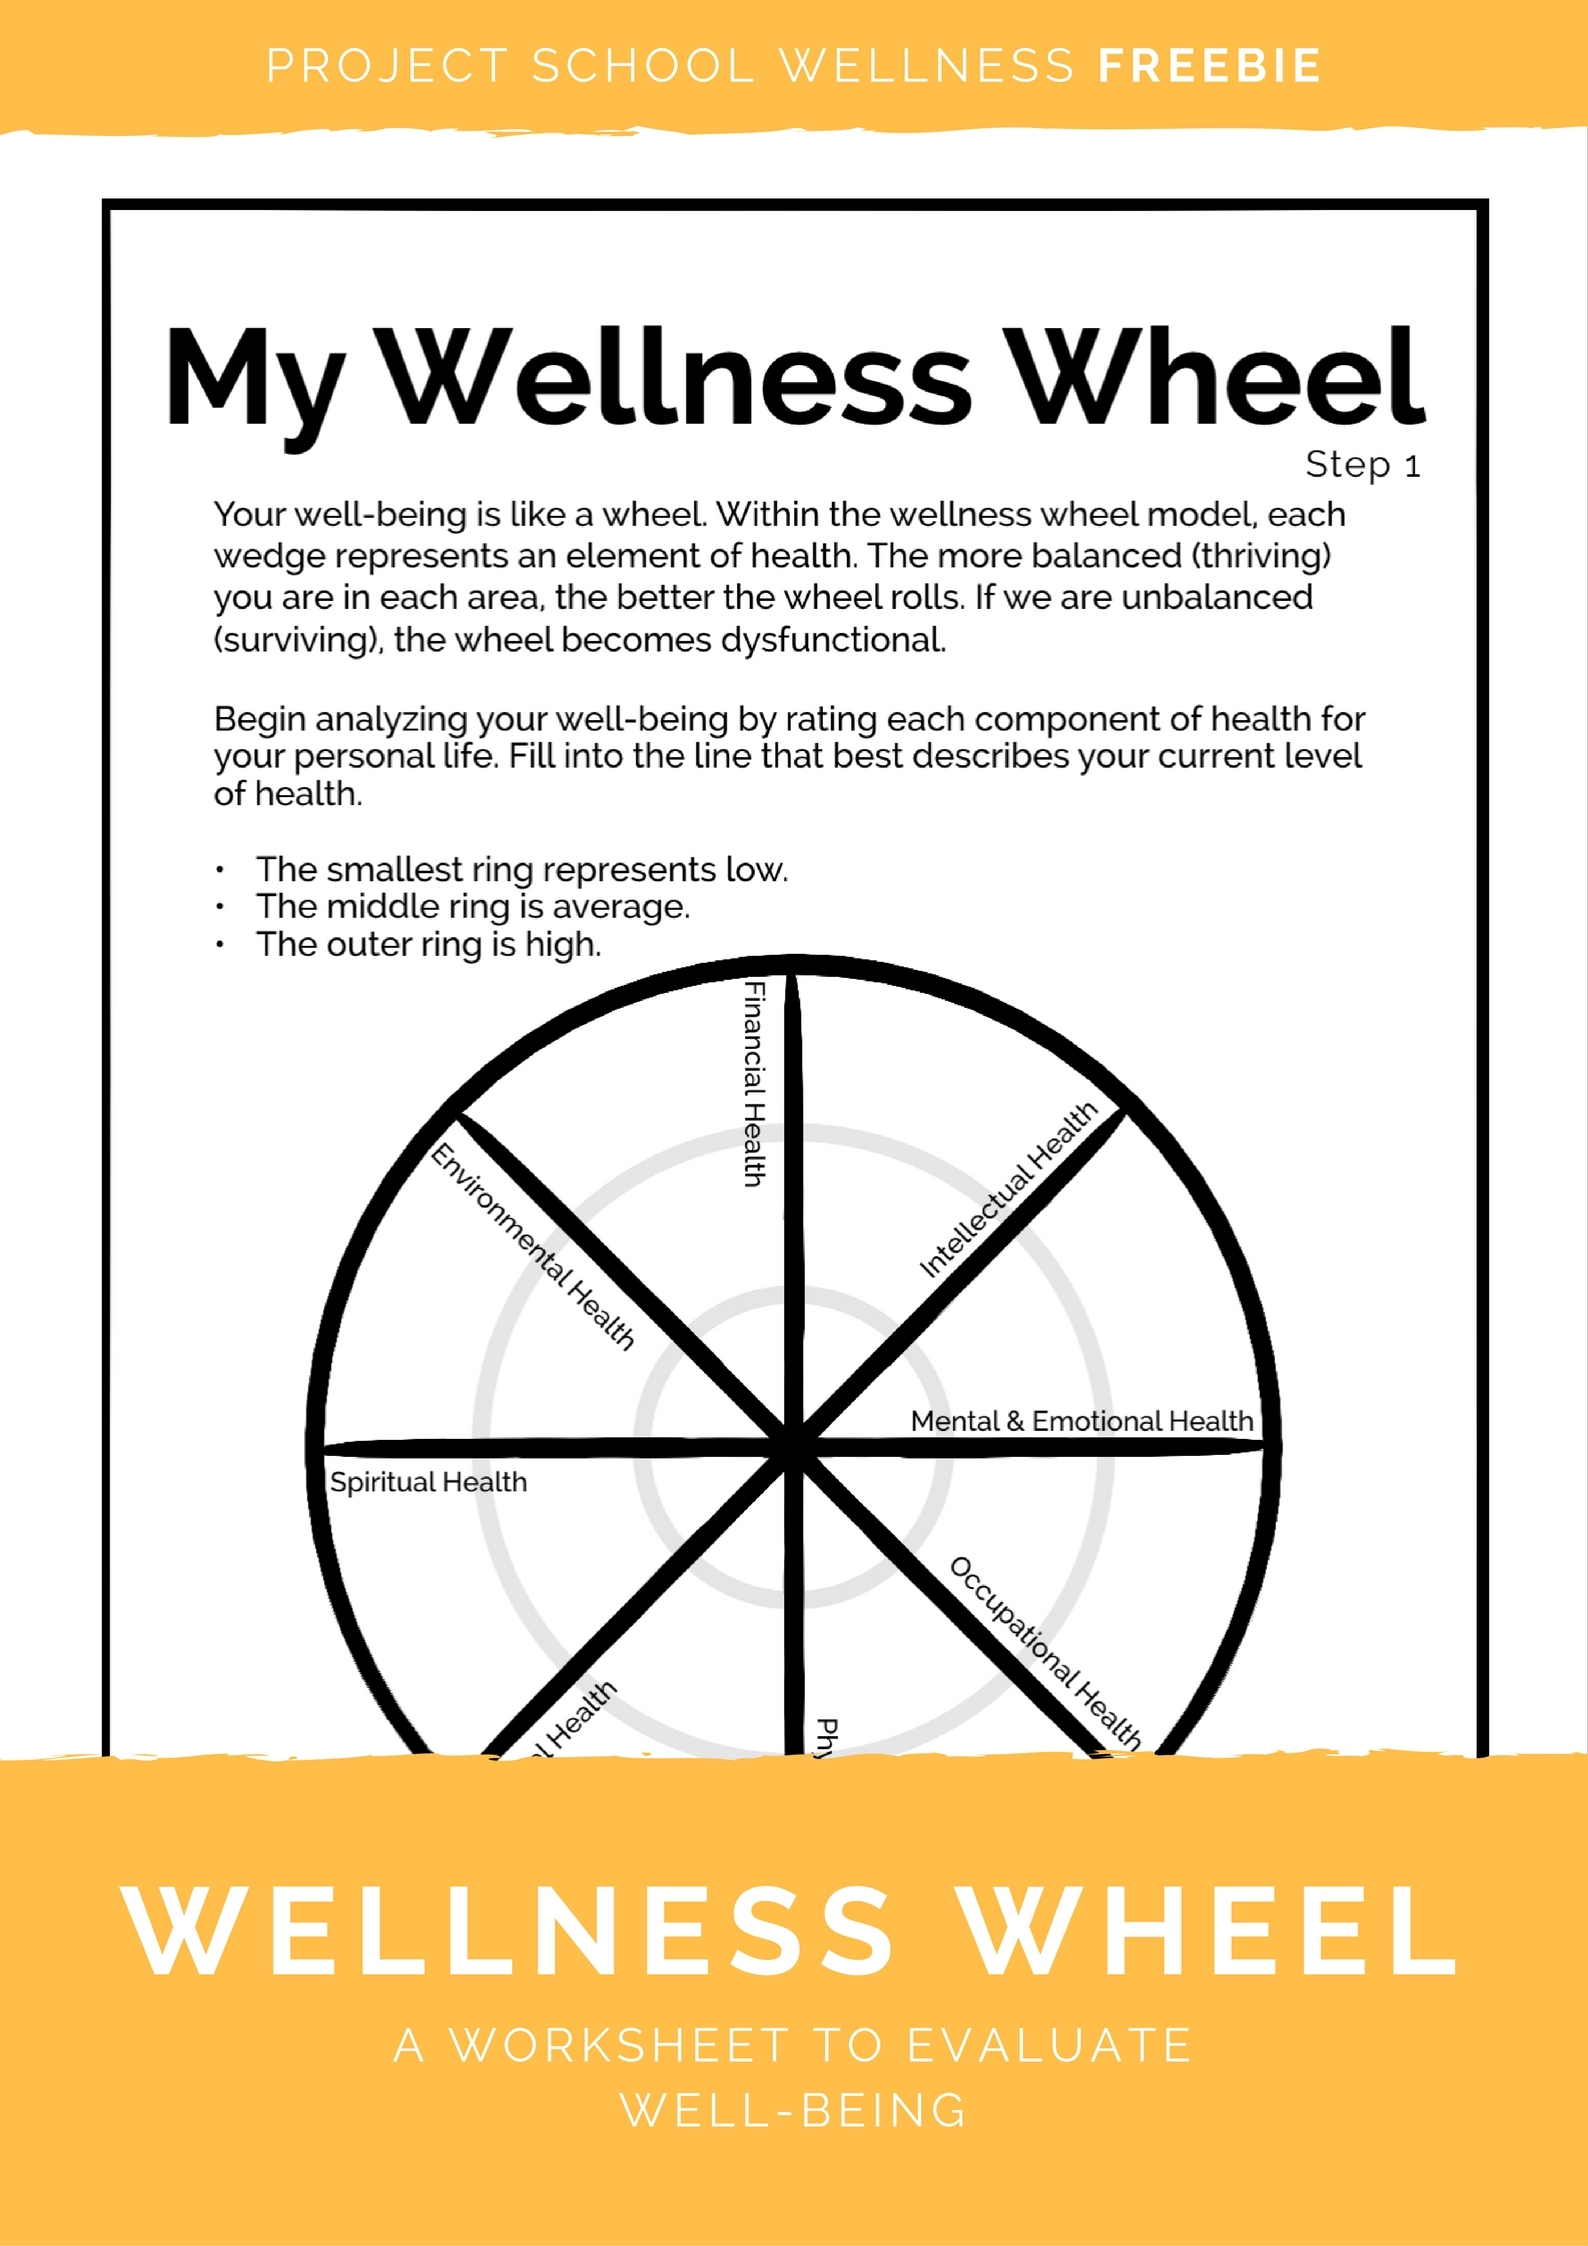 Health and well-being is the basis of any human's ability to thrive! Which is exactly why health should be a fundamental focus in elementary, middle and high school! And there's no better place to start than with the Wellness Wheel! The Wellness Wheel is a tool to teach and explain that health is multidimensional and interconnected. Equipped with these two truths, any student can create a reality in which they thrive! Click to download this freebie lesson plan today!